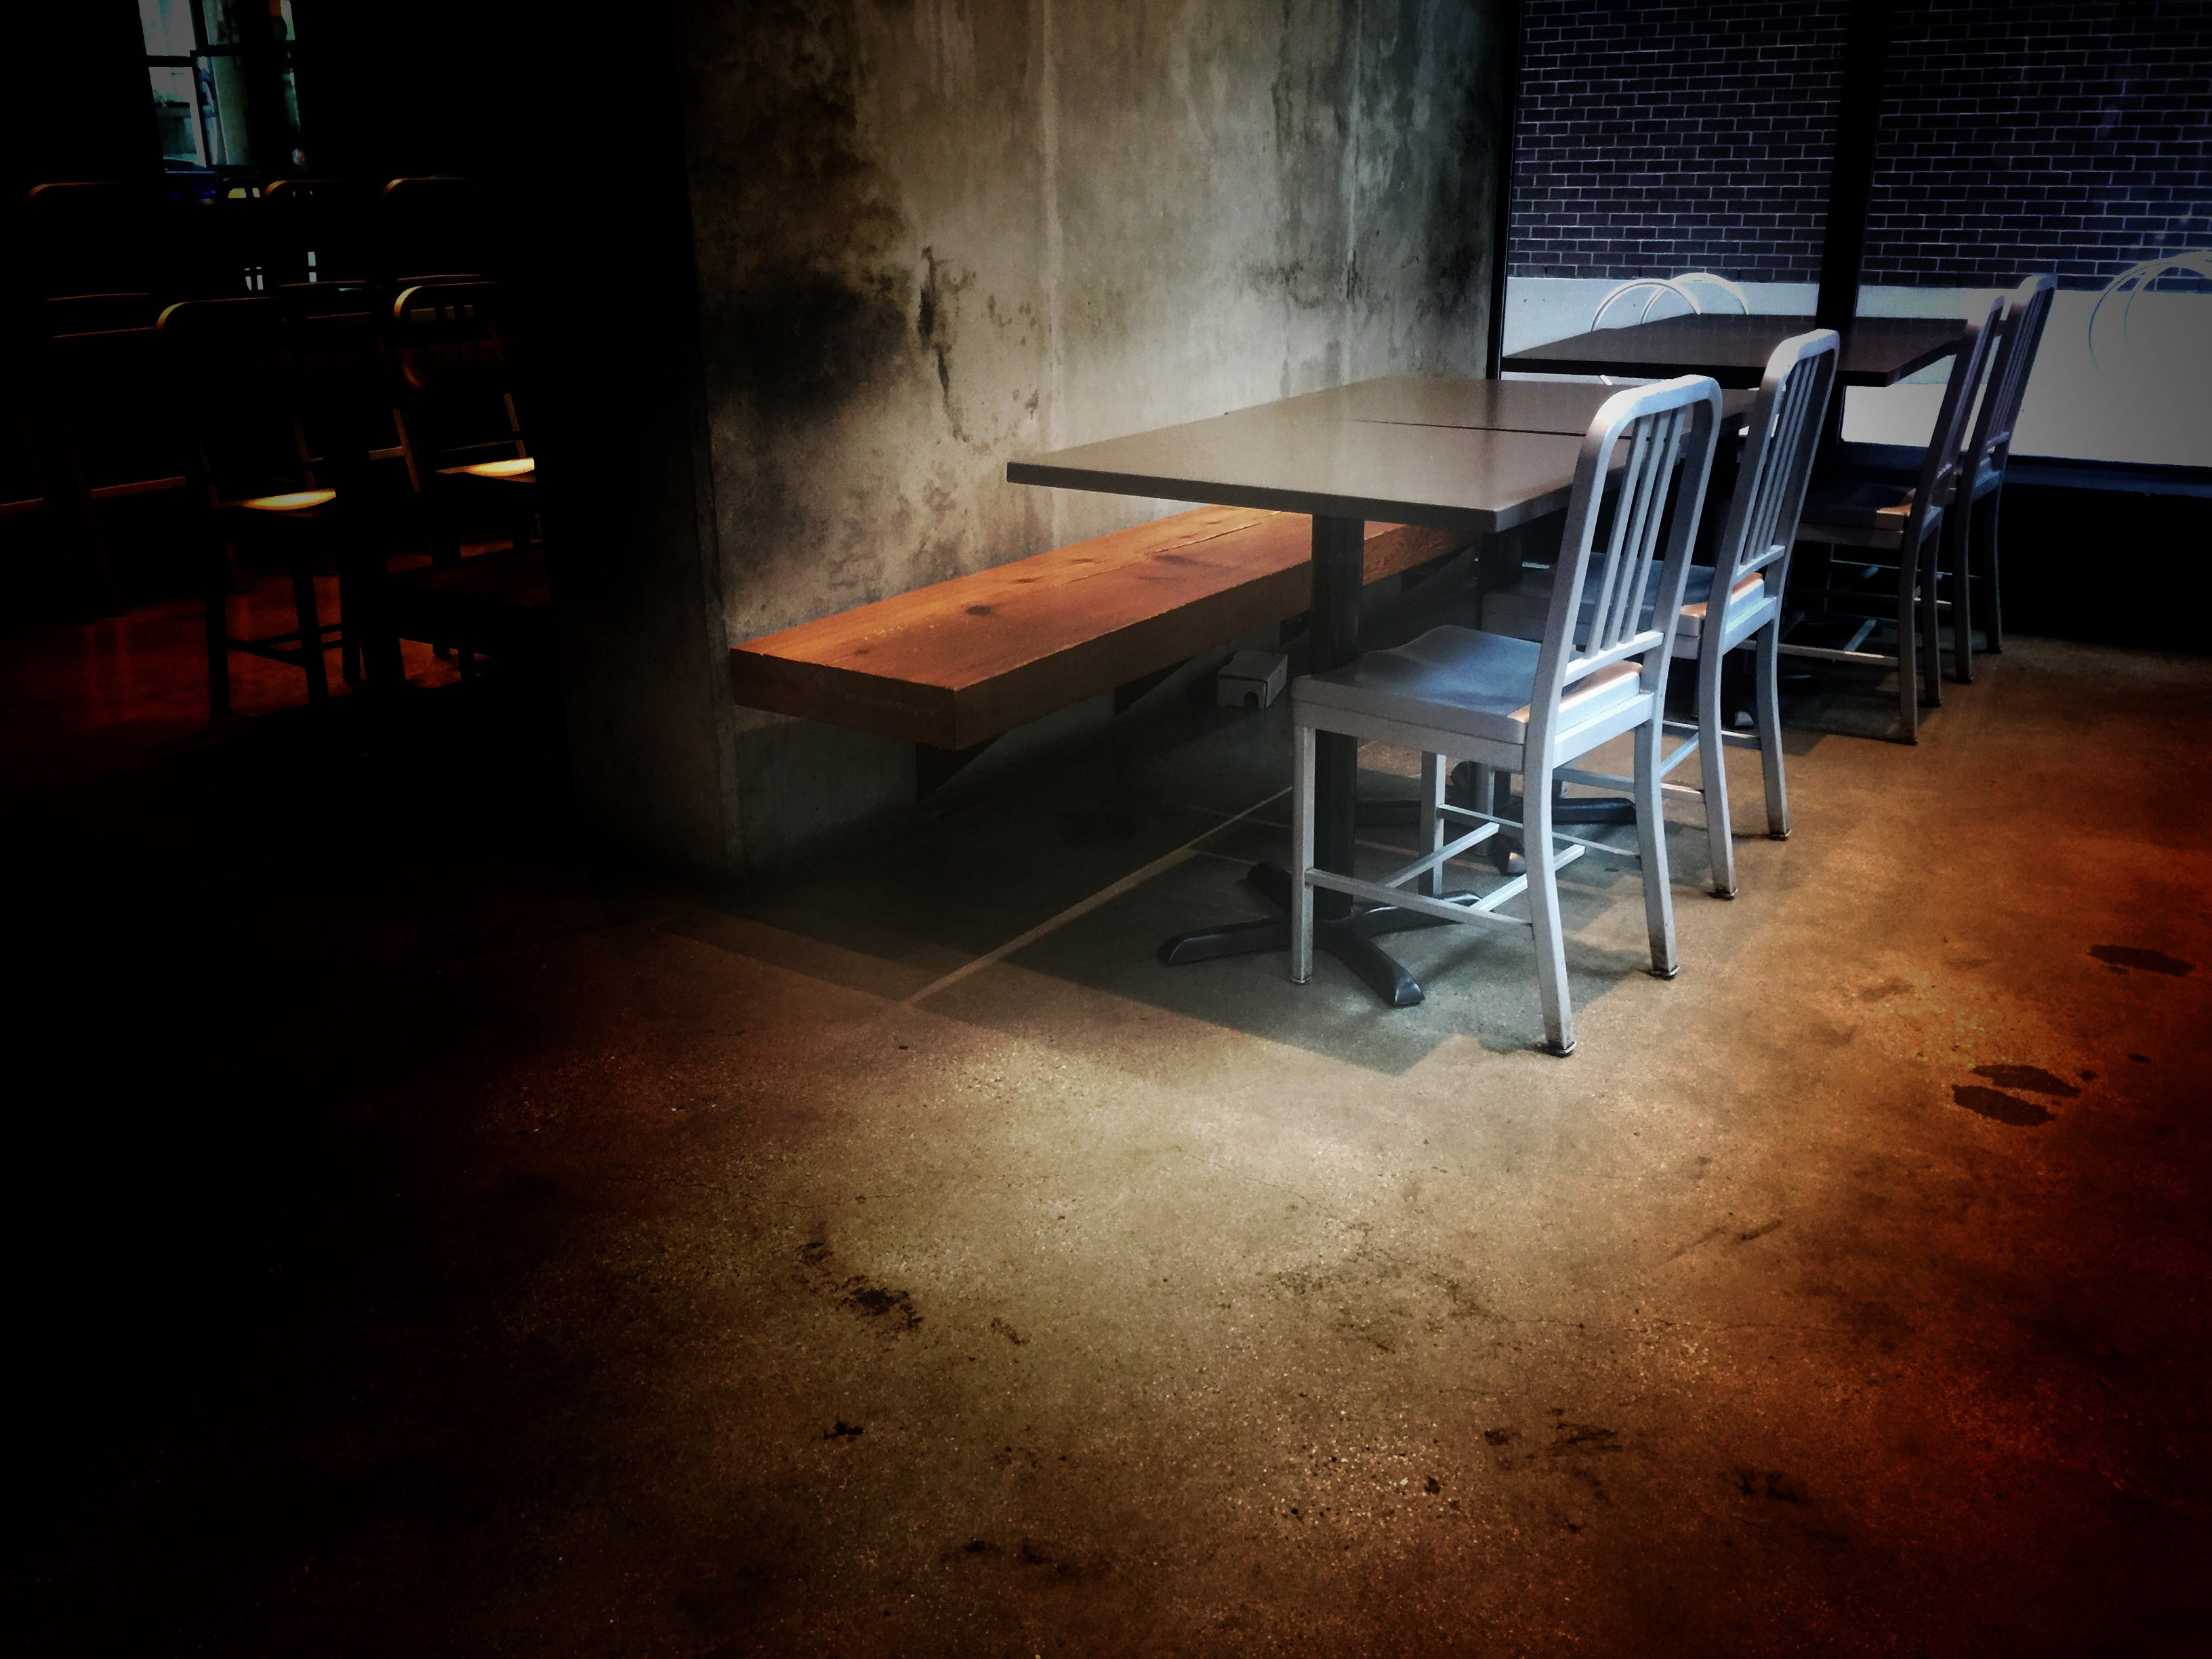 Free stock photo of coffee shop, horror, metal chairs, rustic